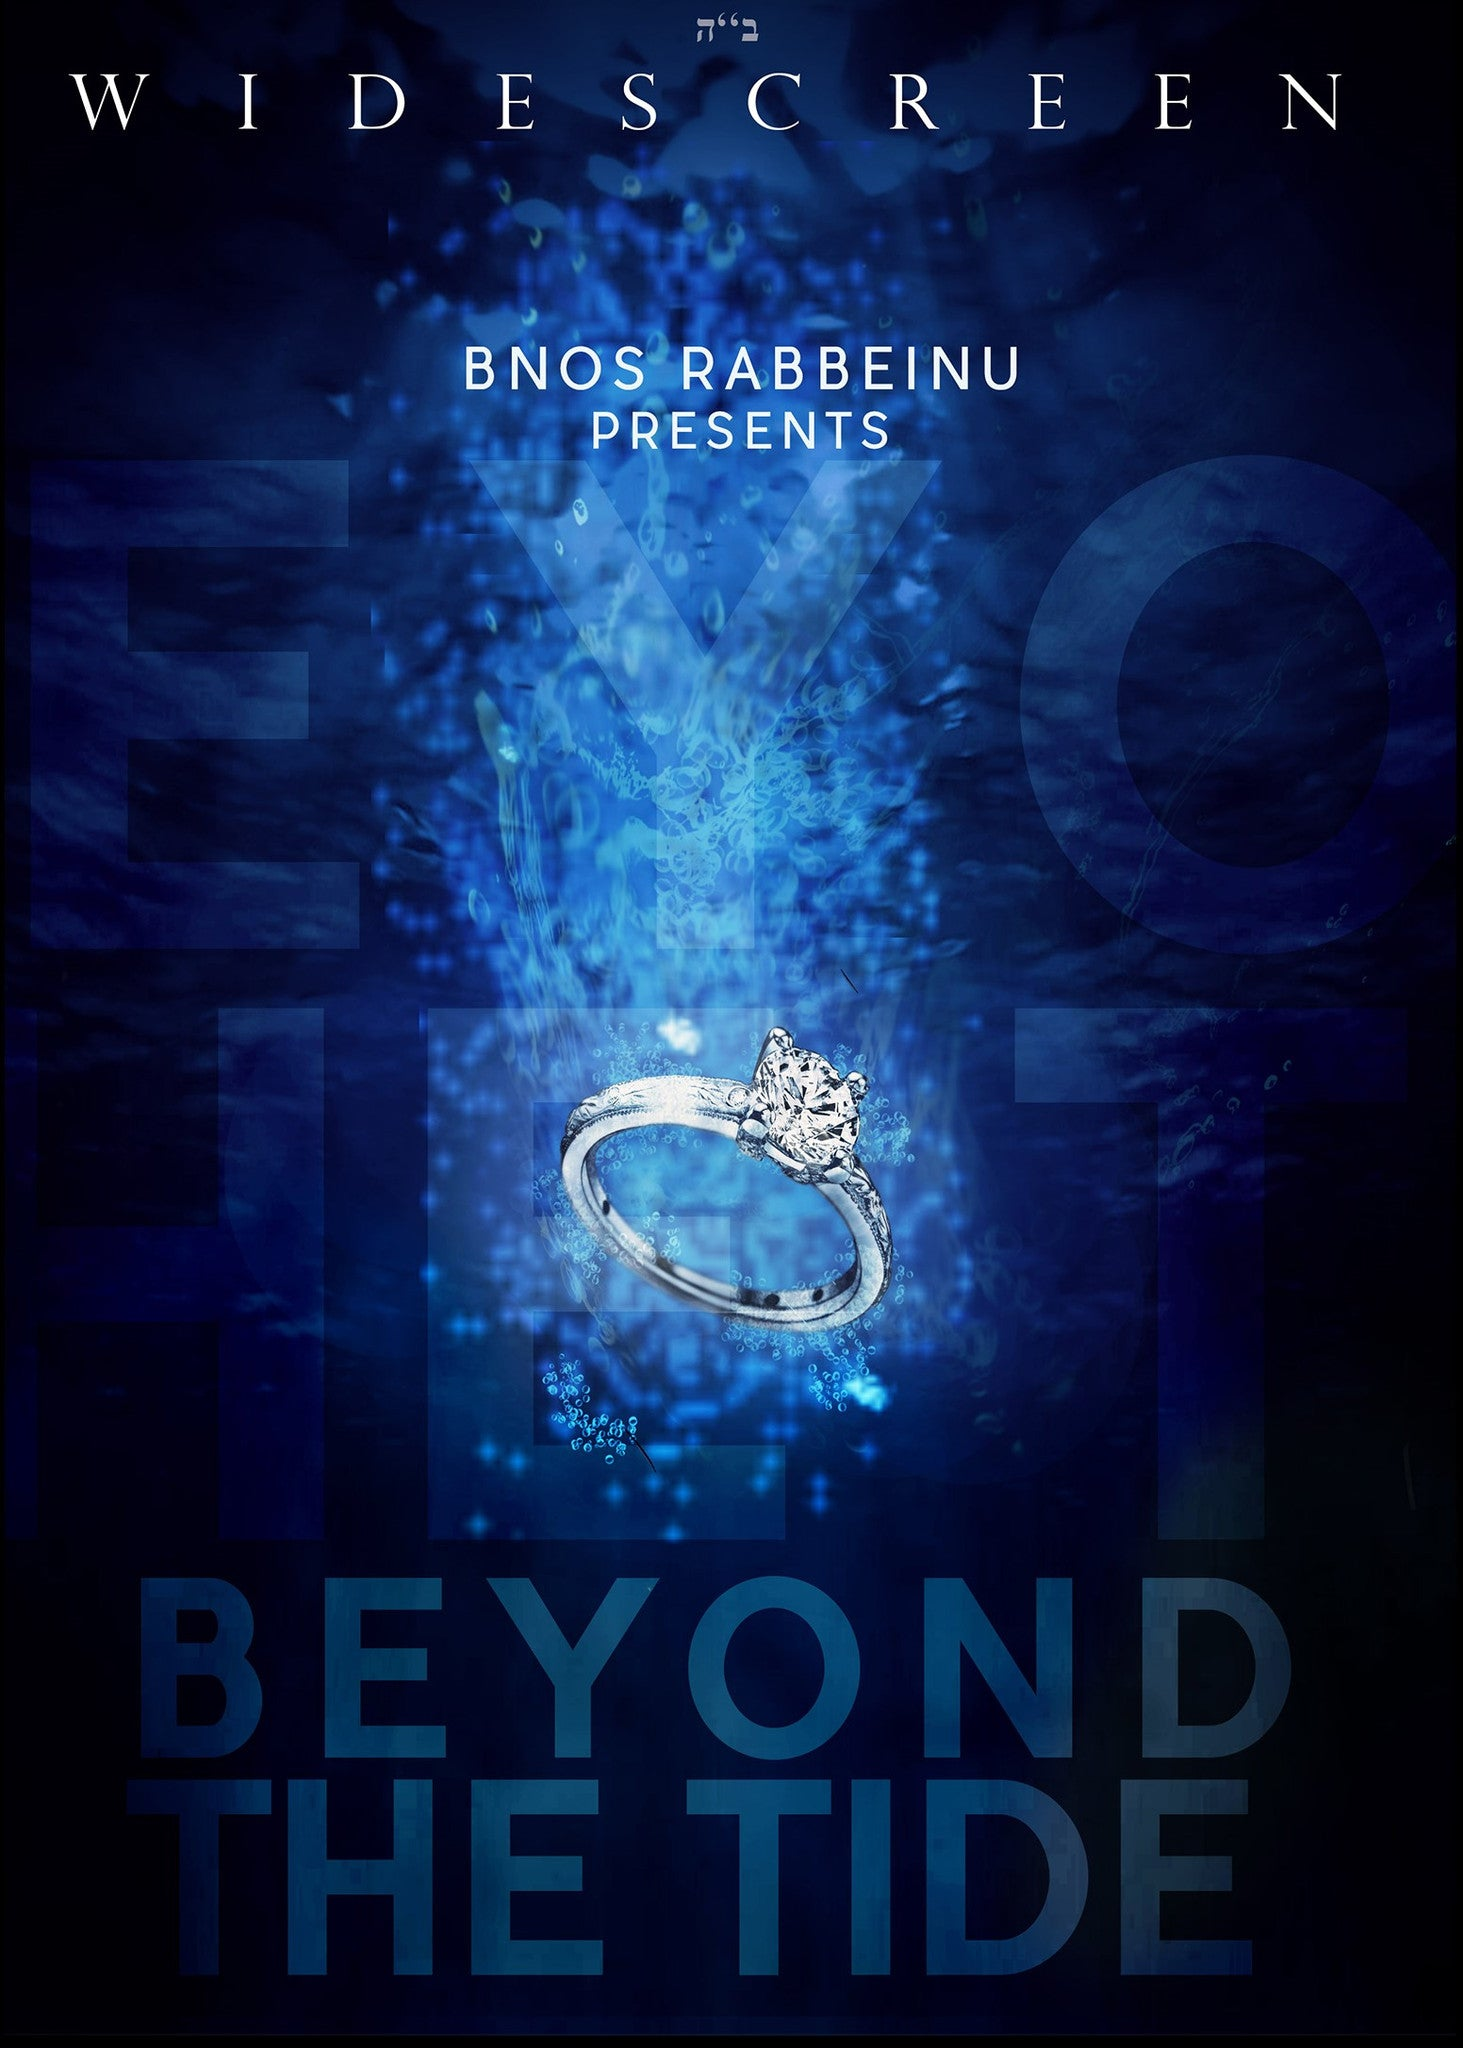 Bnos Rabbeinu - Beyond the Tide